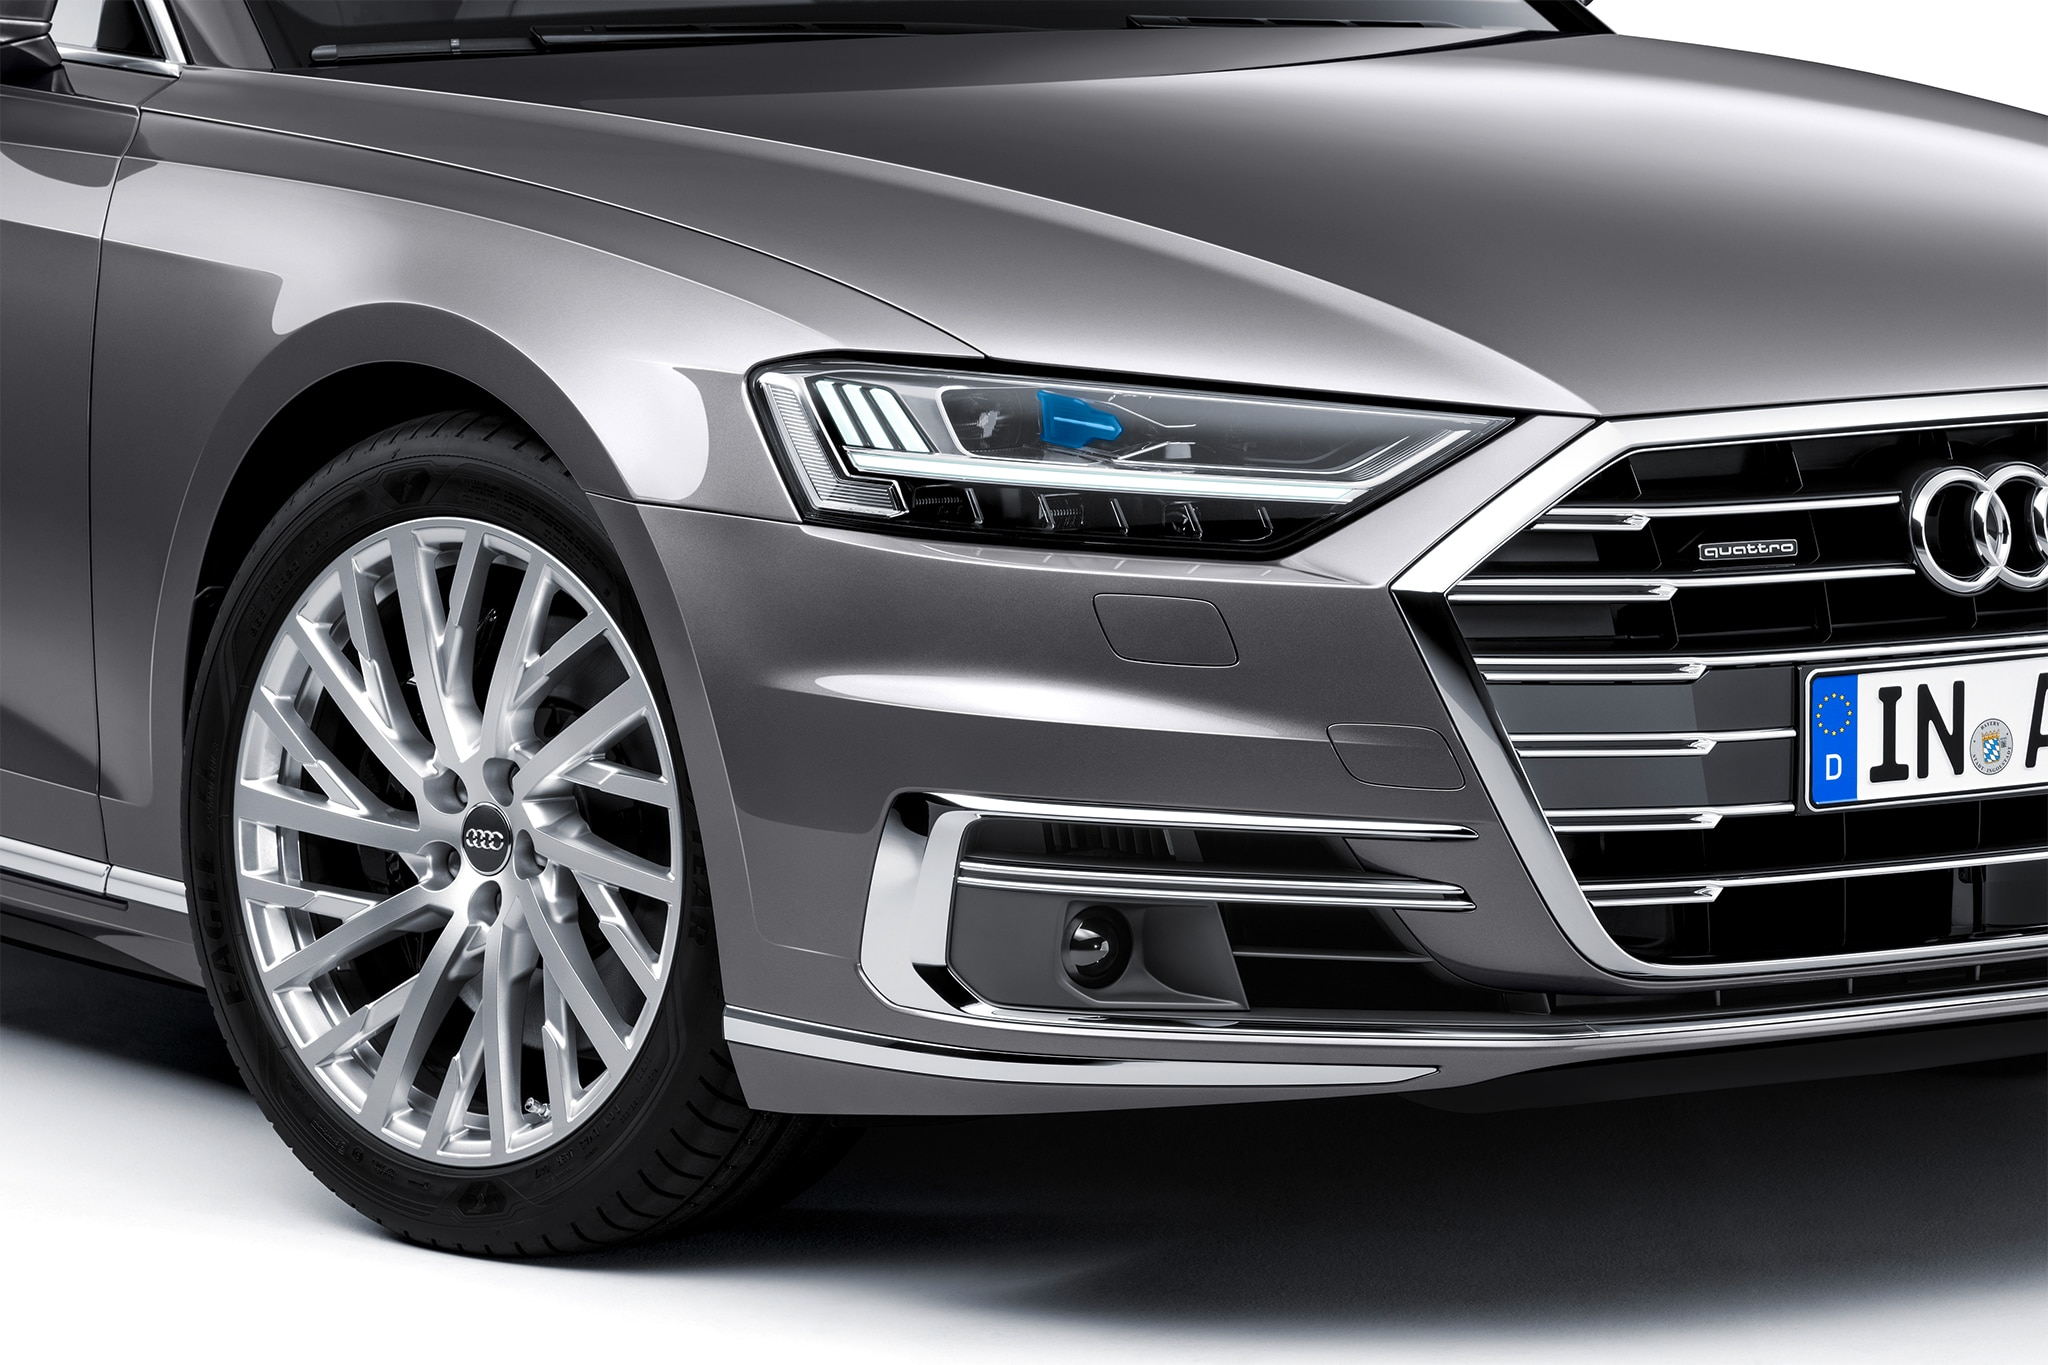 2019 Audi A8 L Headlight And Grille Motor Trend En Español